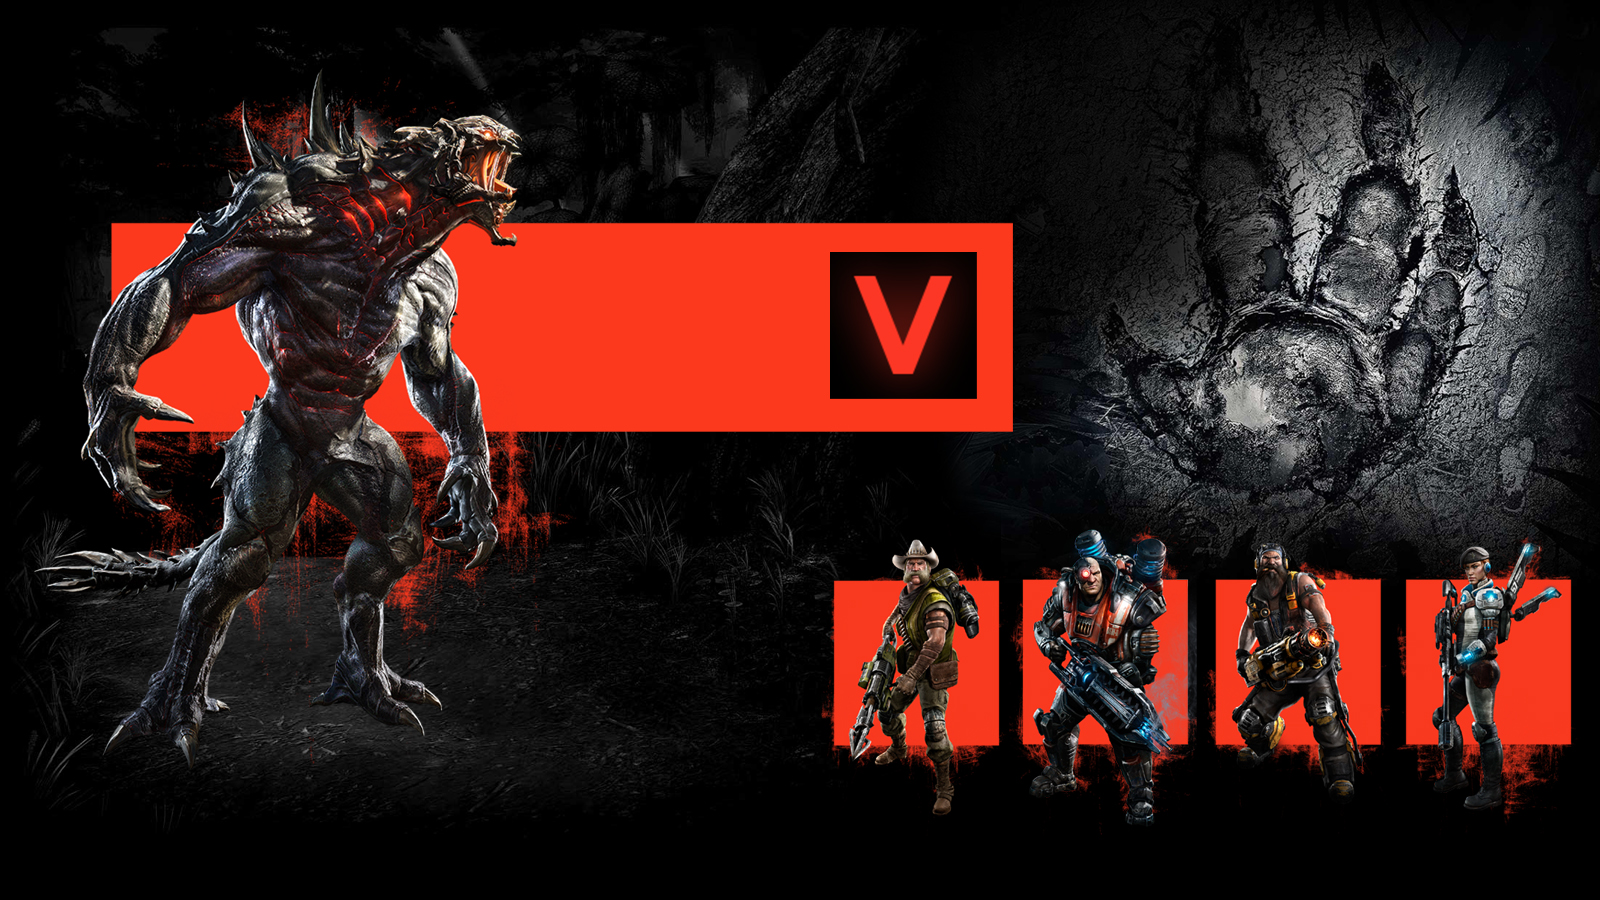 Free Evolve Wallpaper